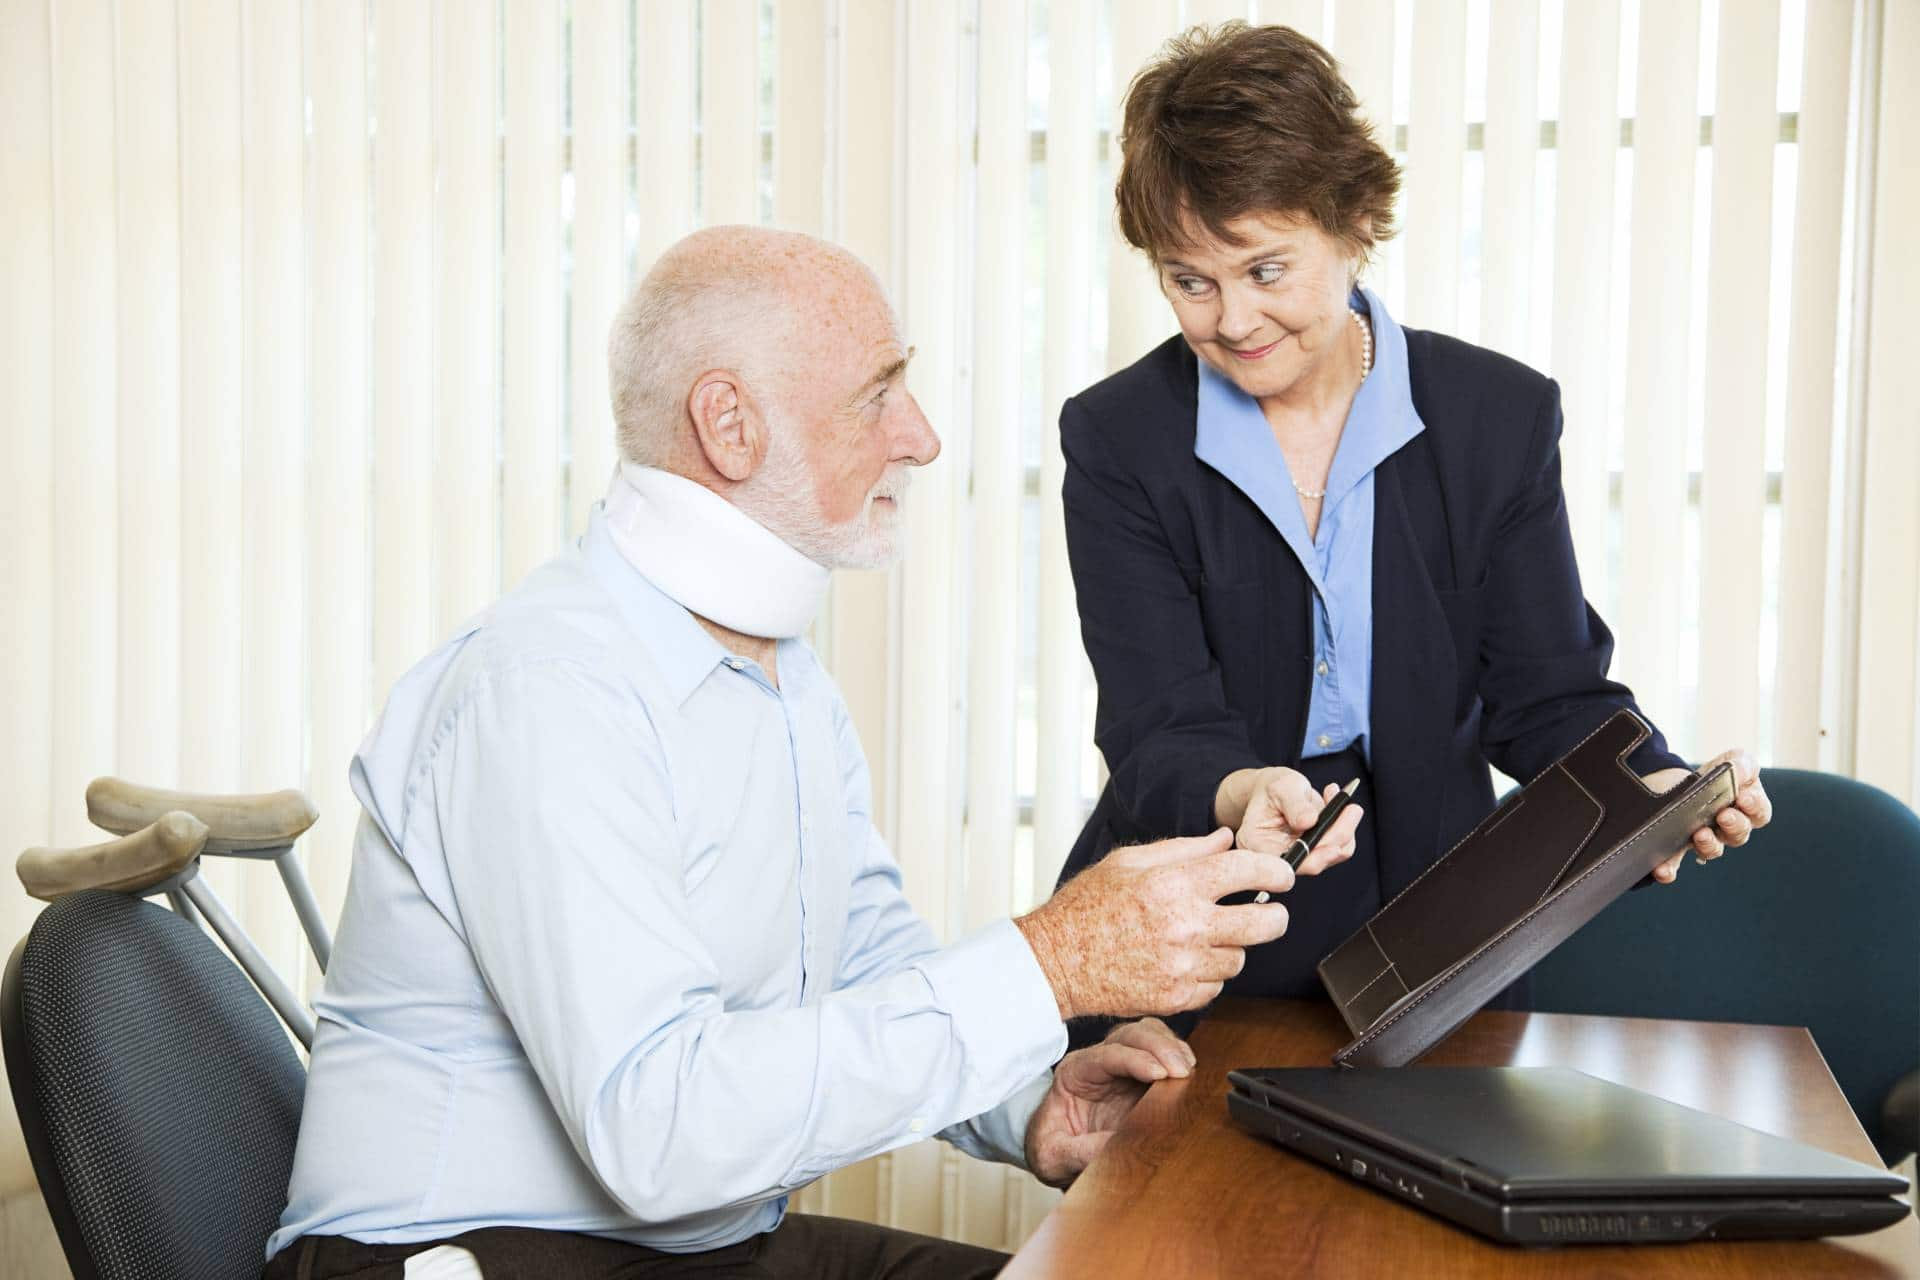 Schedule a free consultation with our personal injury lawyers at the Angell Law Firm in Little Five Points, Ga.